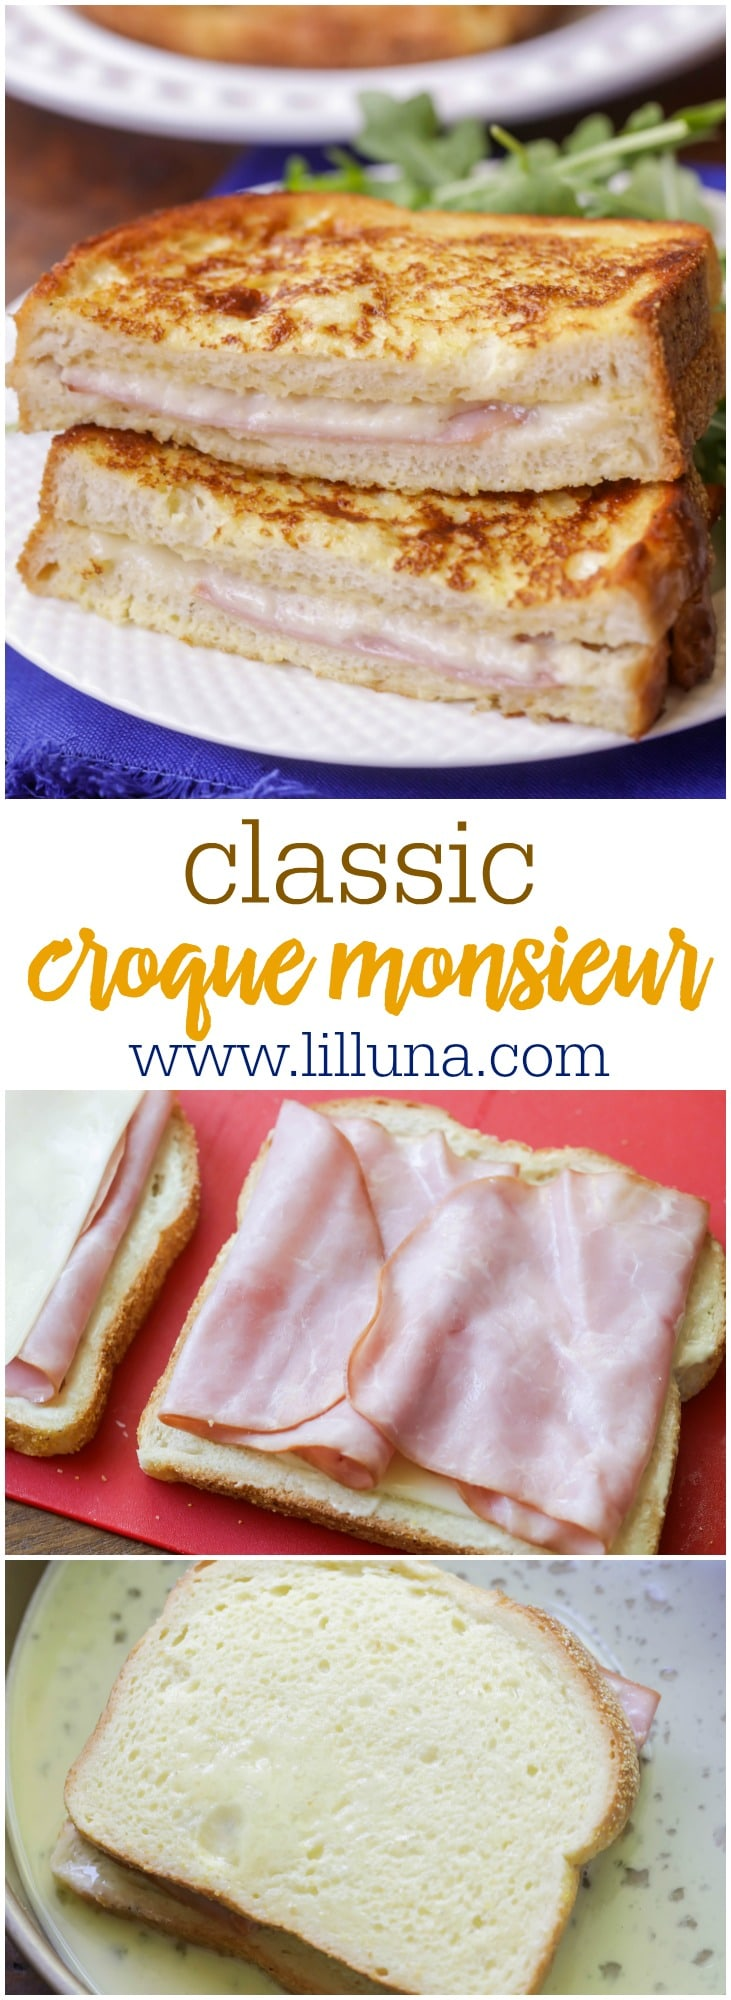 Easy Croque Monsieur - a baked or fried boiled ham and cheese sandwich that is delicious!